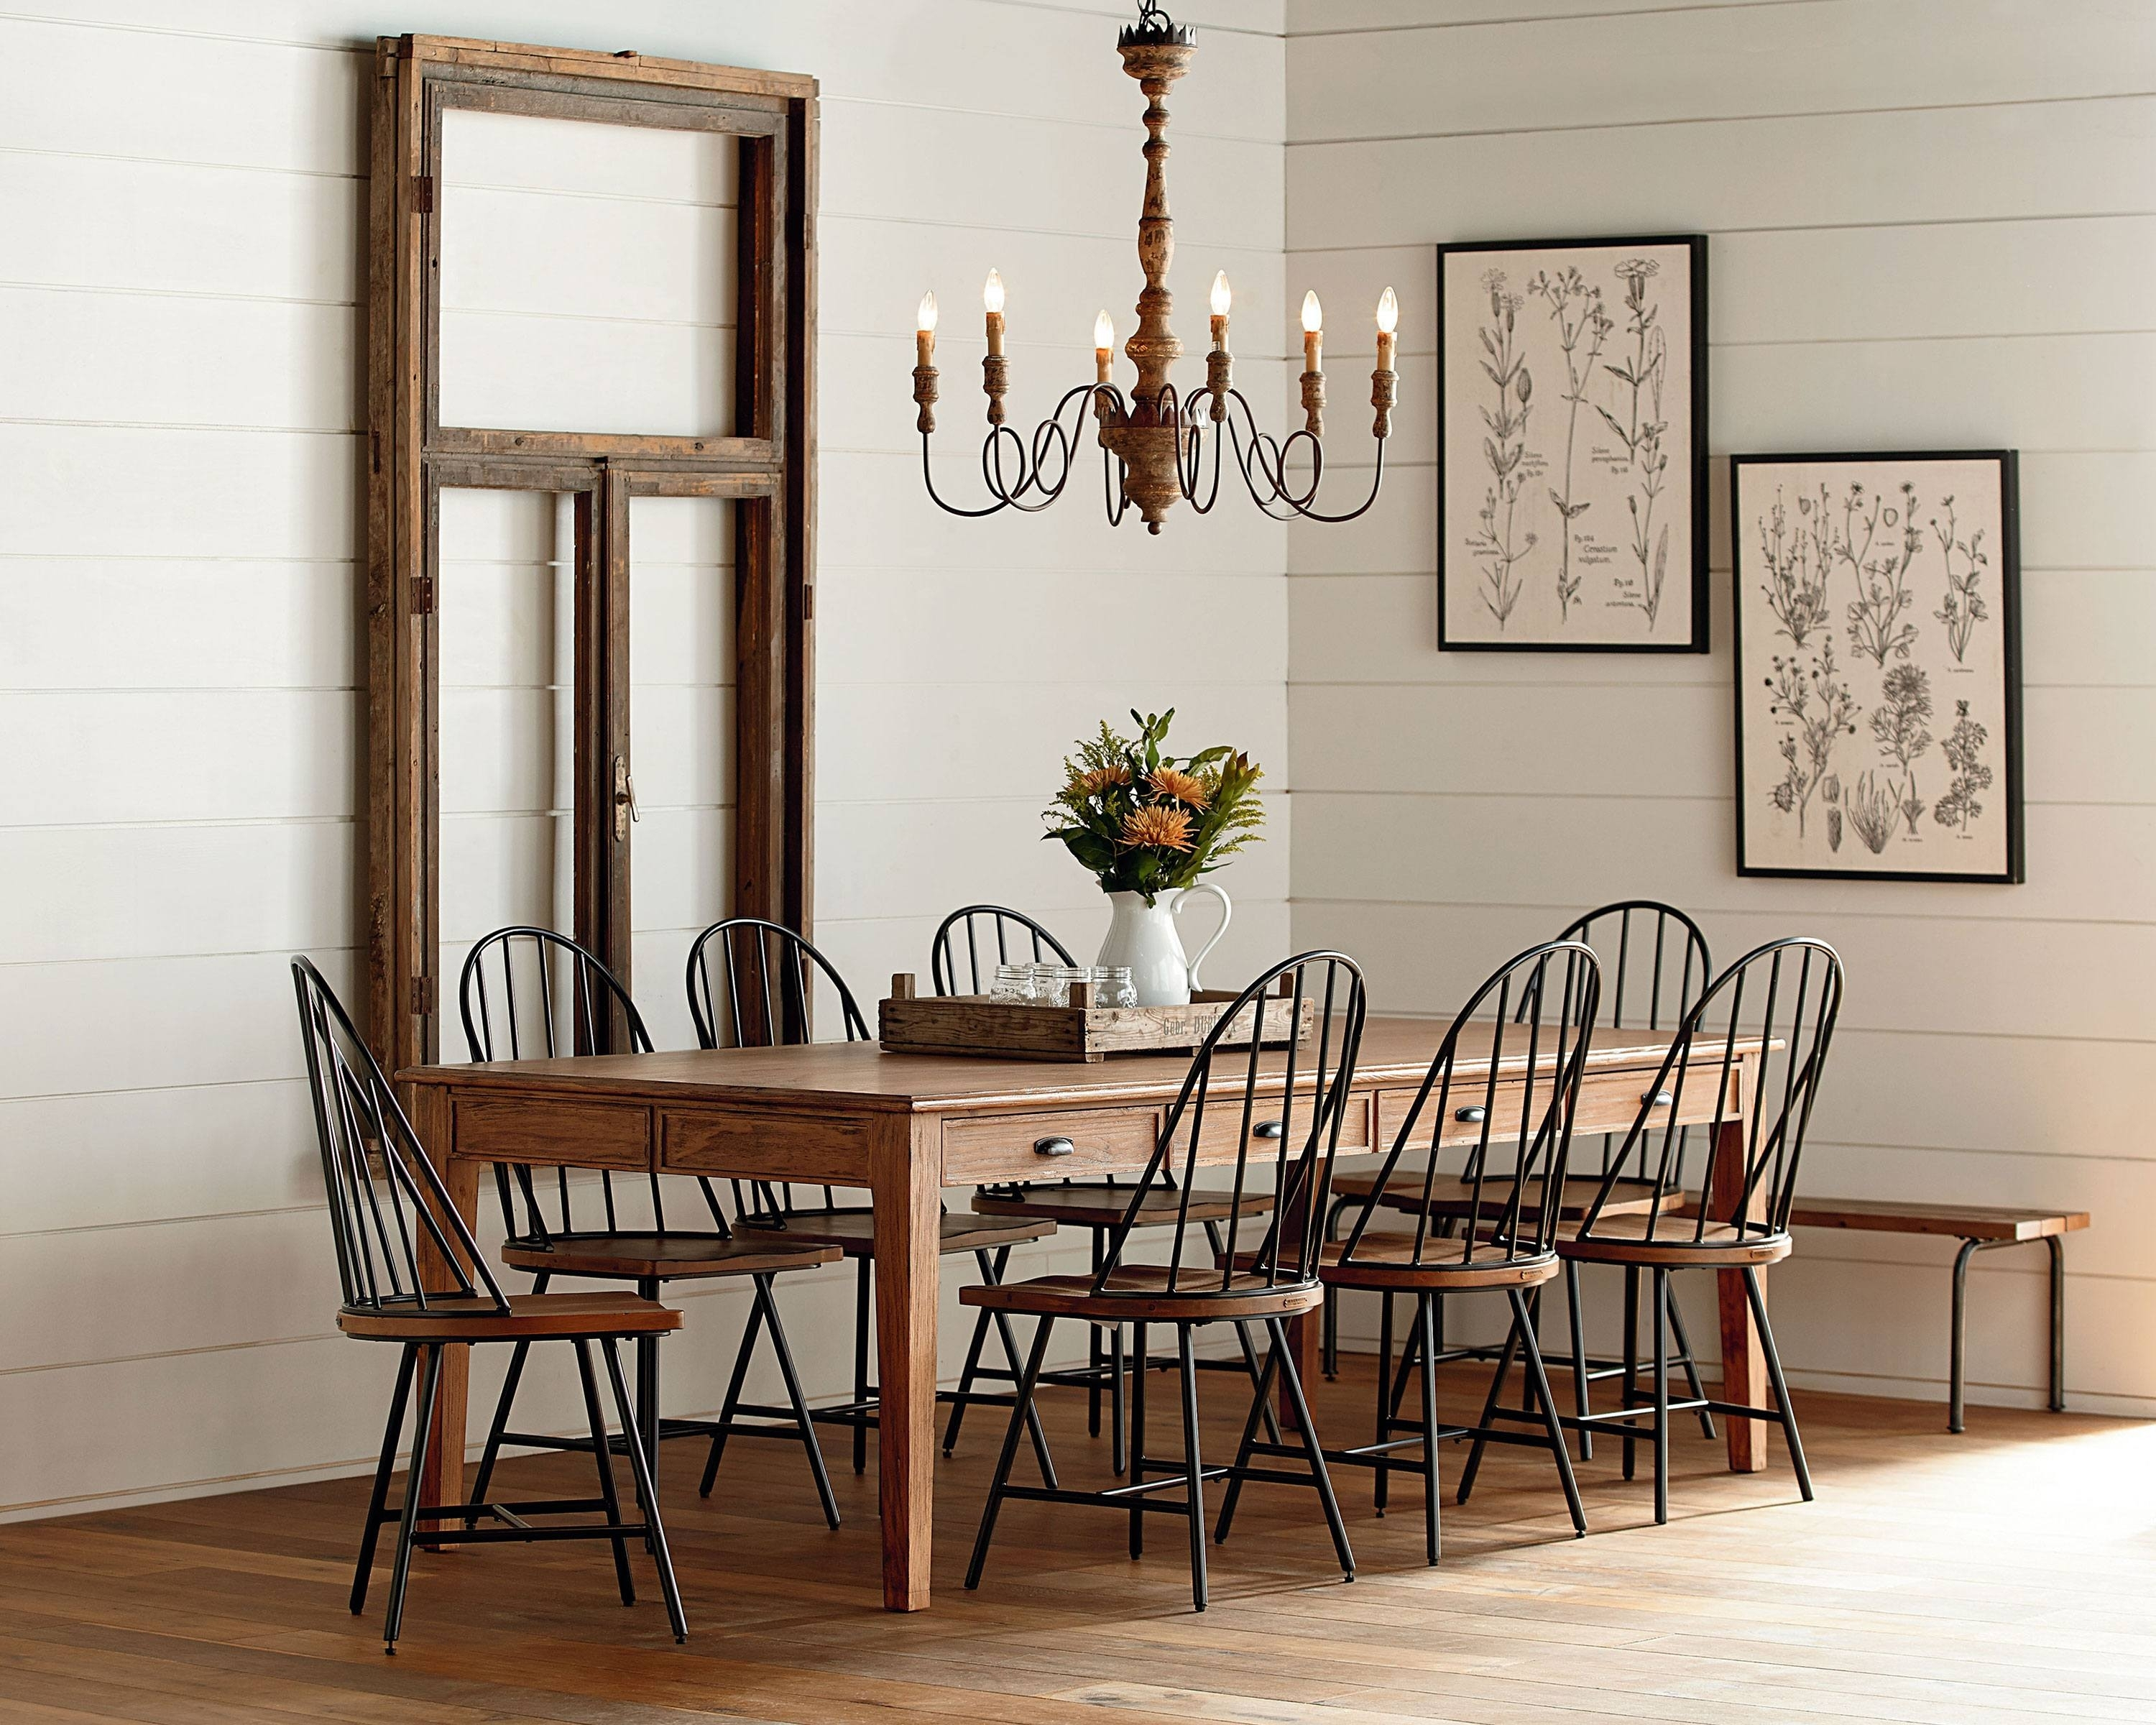 Keeping Table Dining Room – Magnolia Home With Regard To Newest Magnolia Home Keeping Dining Tables (Image 11 of 20)